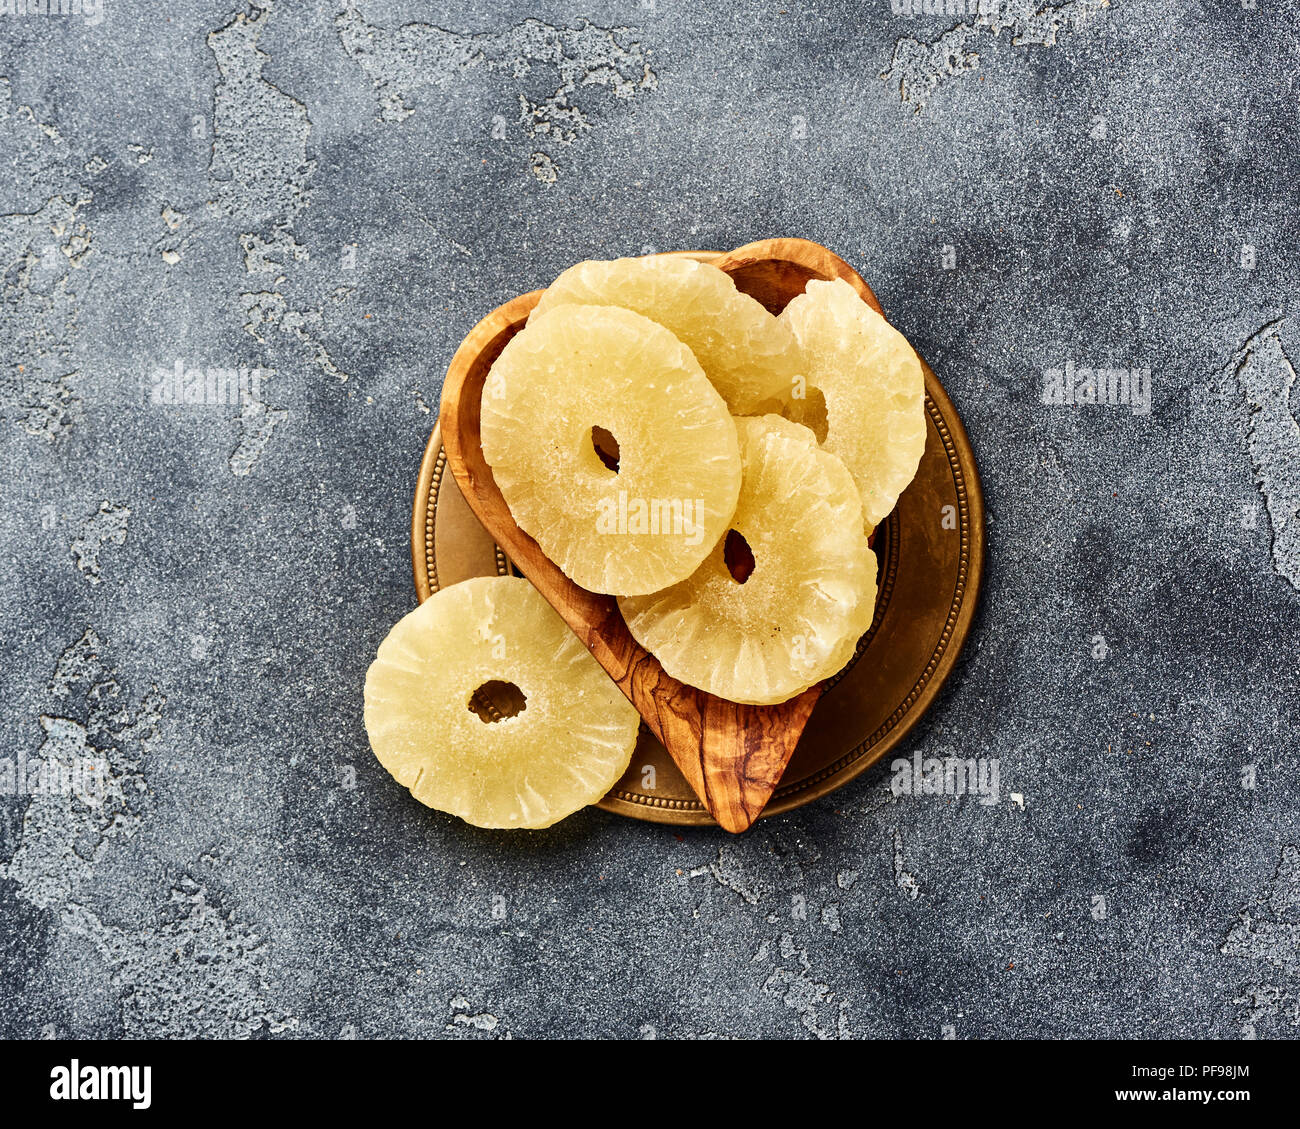 Dried pineapple rings on a gray table. Top viw of sweet paneapple slices. - Stock Image